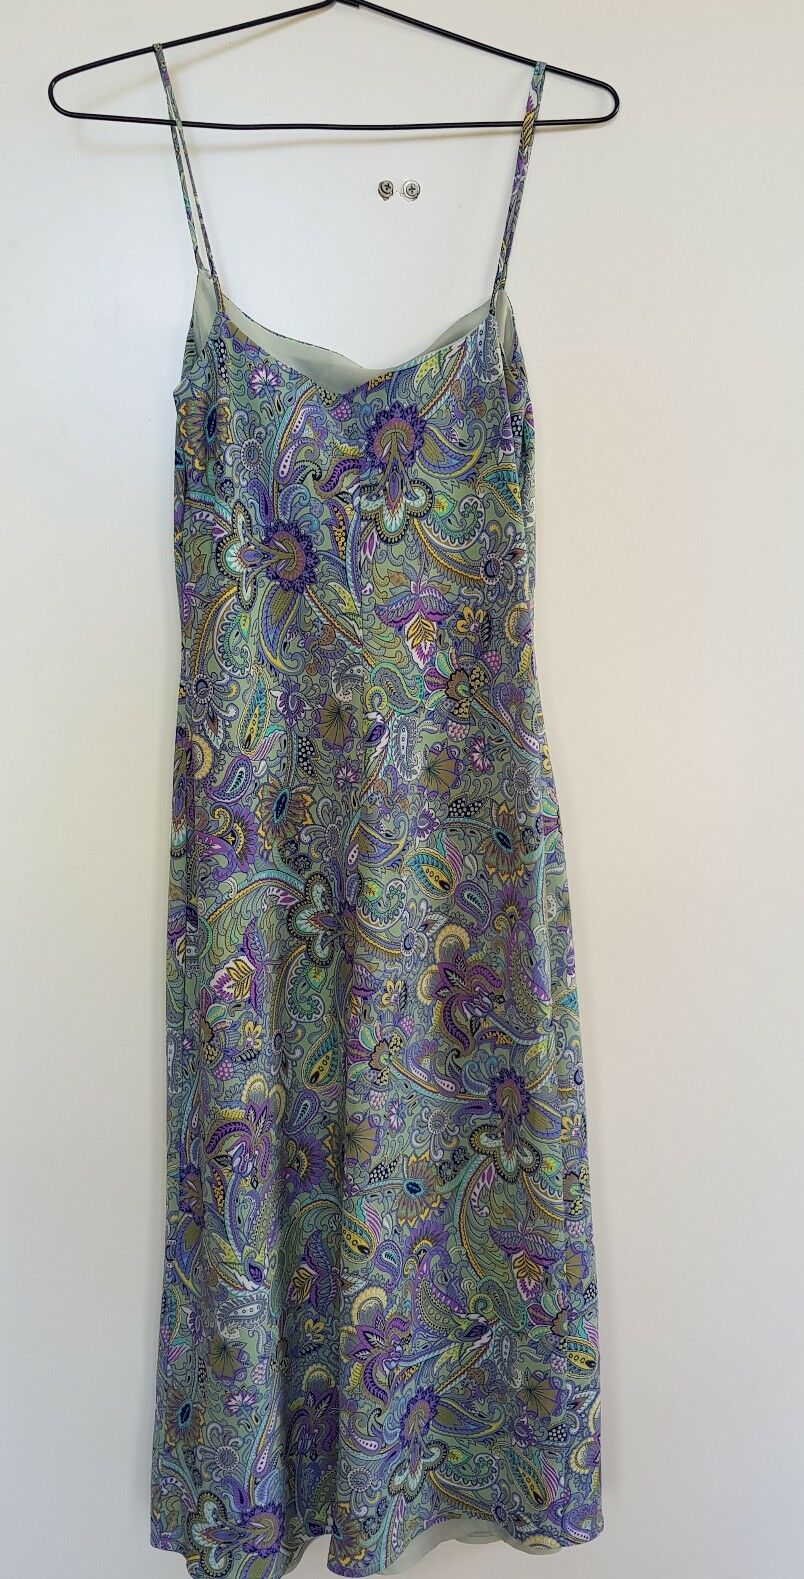 SHIEKE bluee Green Purple Paisley Print Dress Size 8